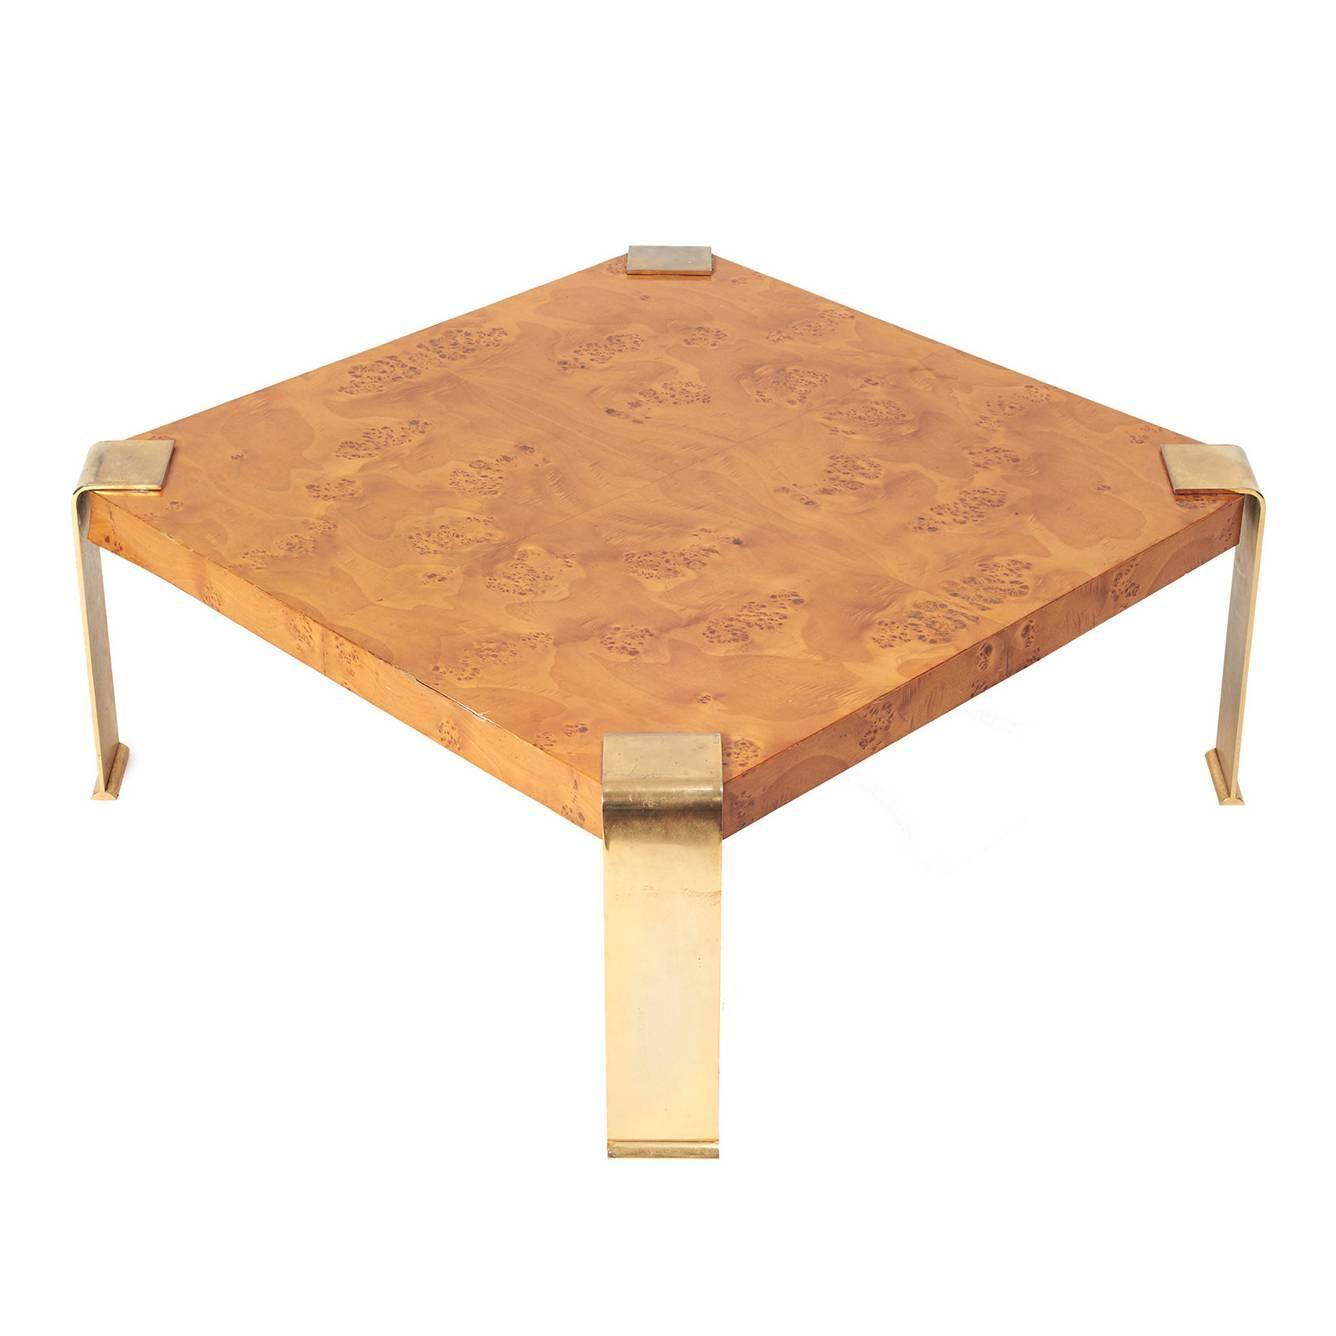 Burl Coffee Table With Brass Legs For Sale At 1stdibs